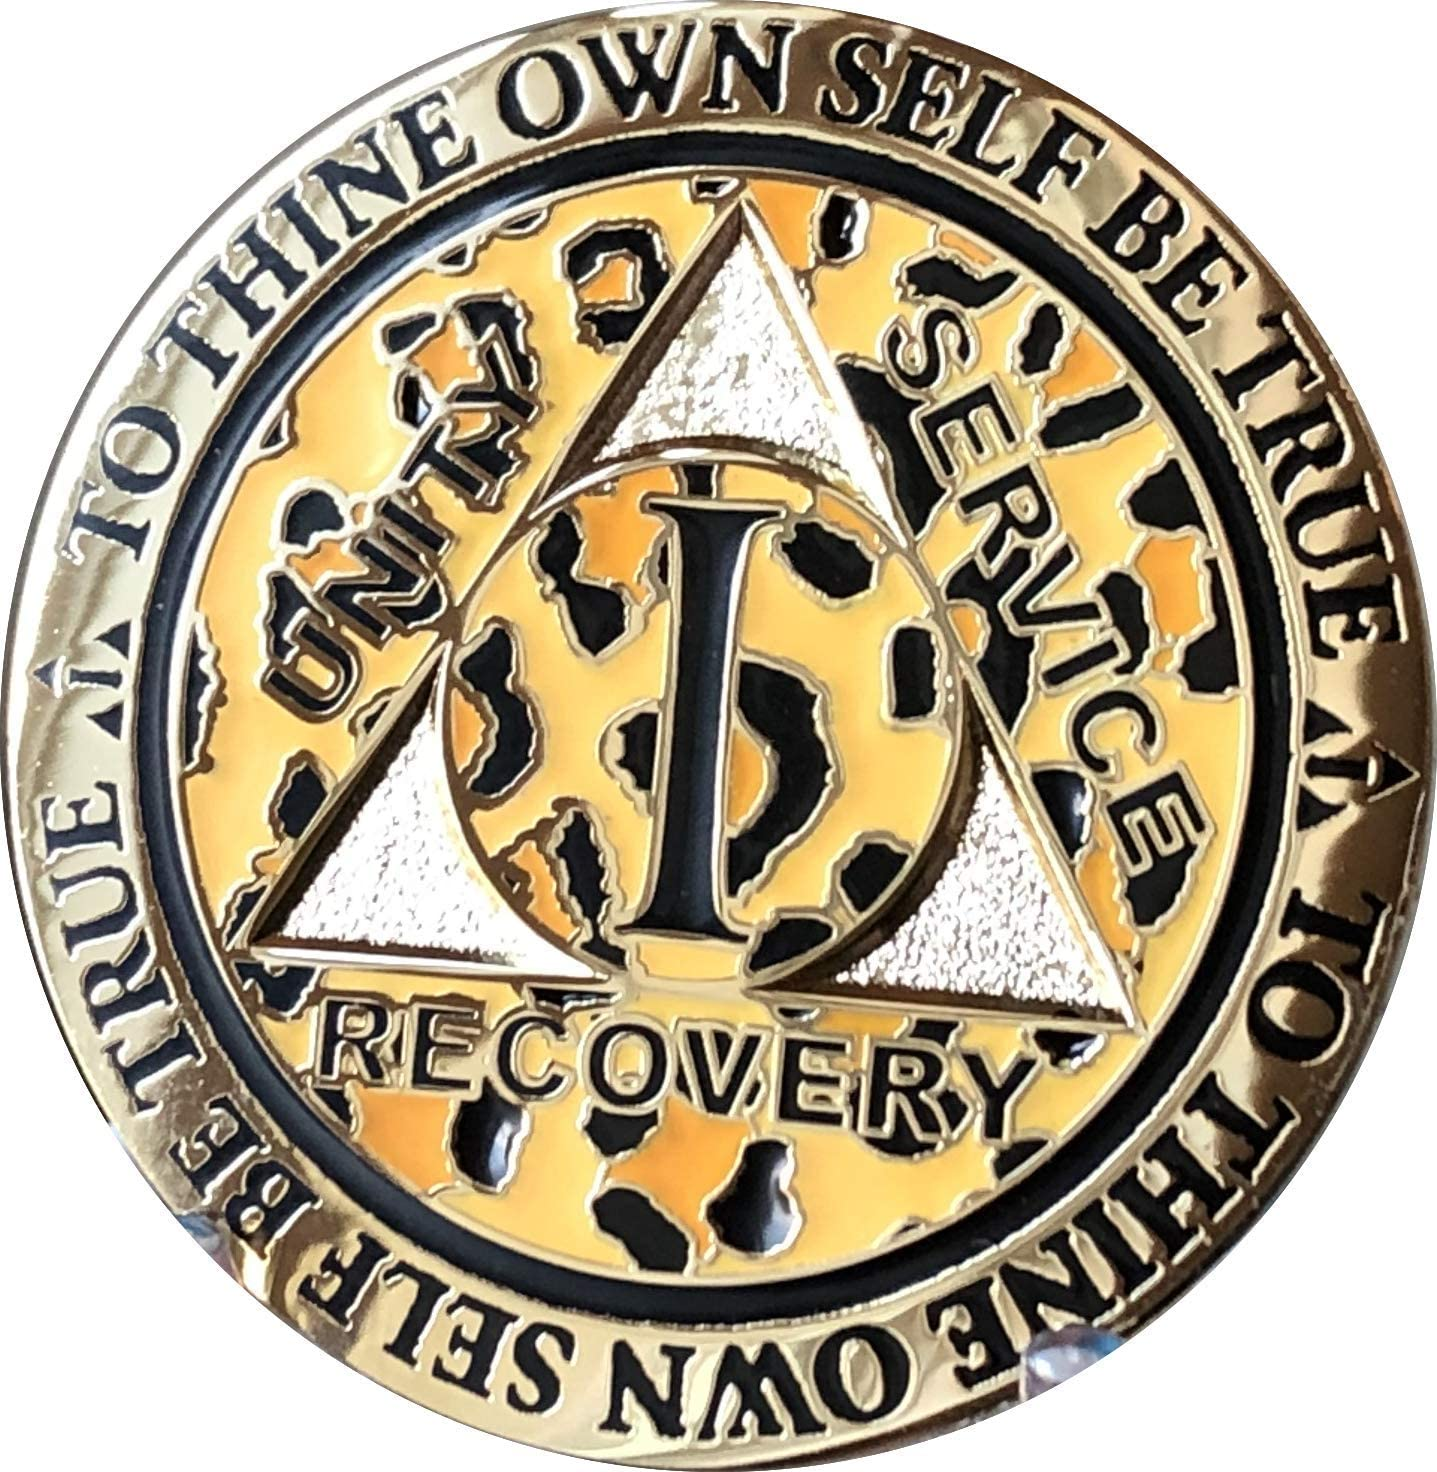 RecoveryChip 1 Year AA Medallion Reflex Leopard Gold Plated Animal Print Chip